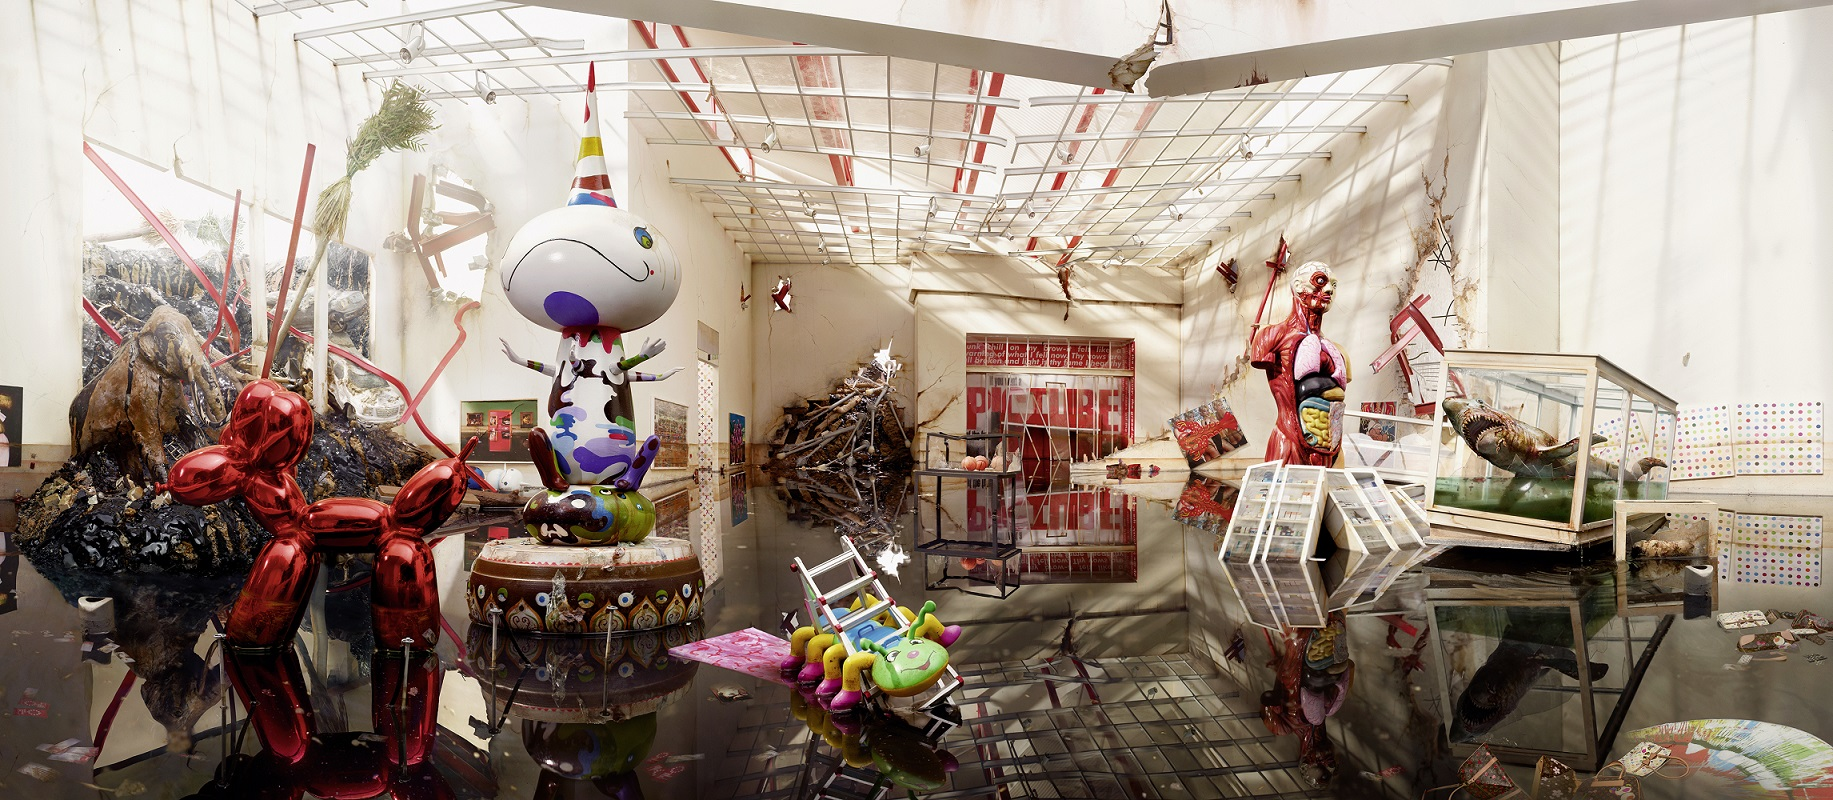 Seismic Shift 2012 | © David LaChapelle Studio